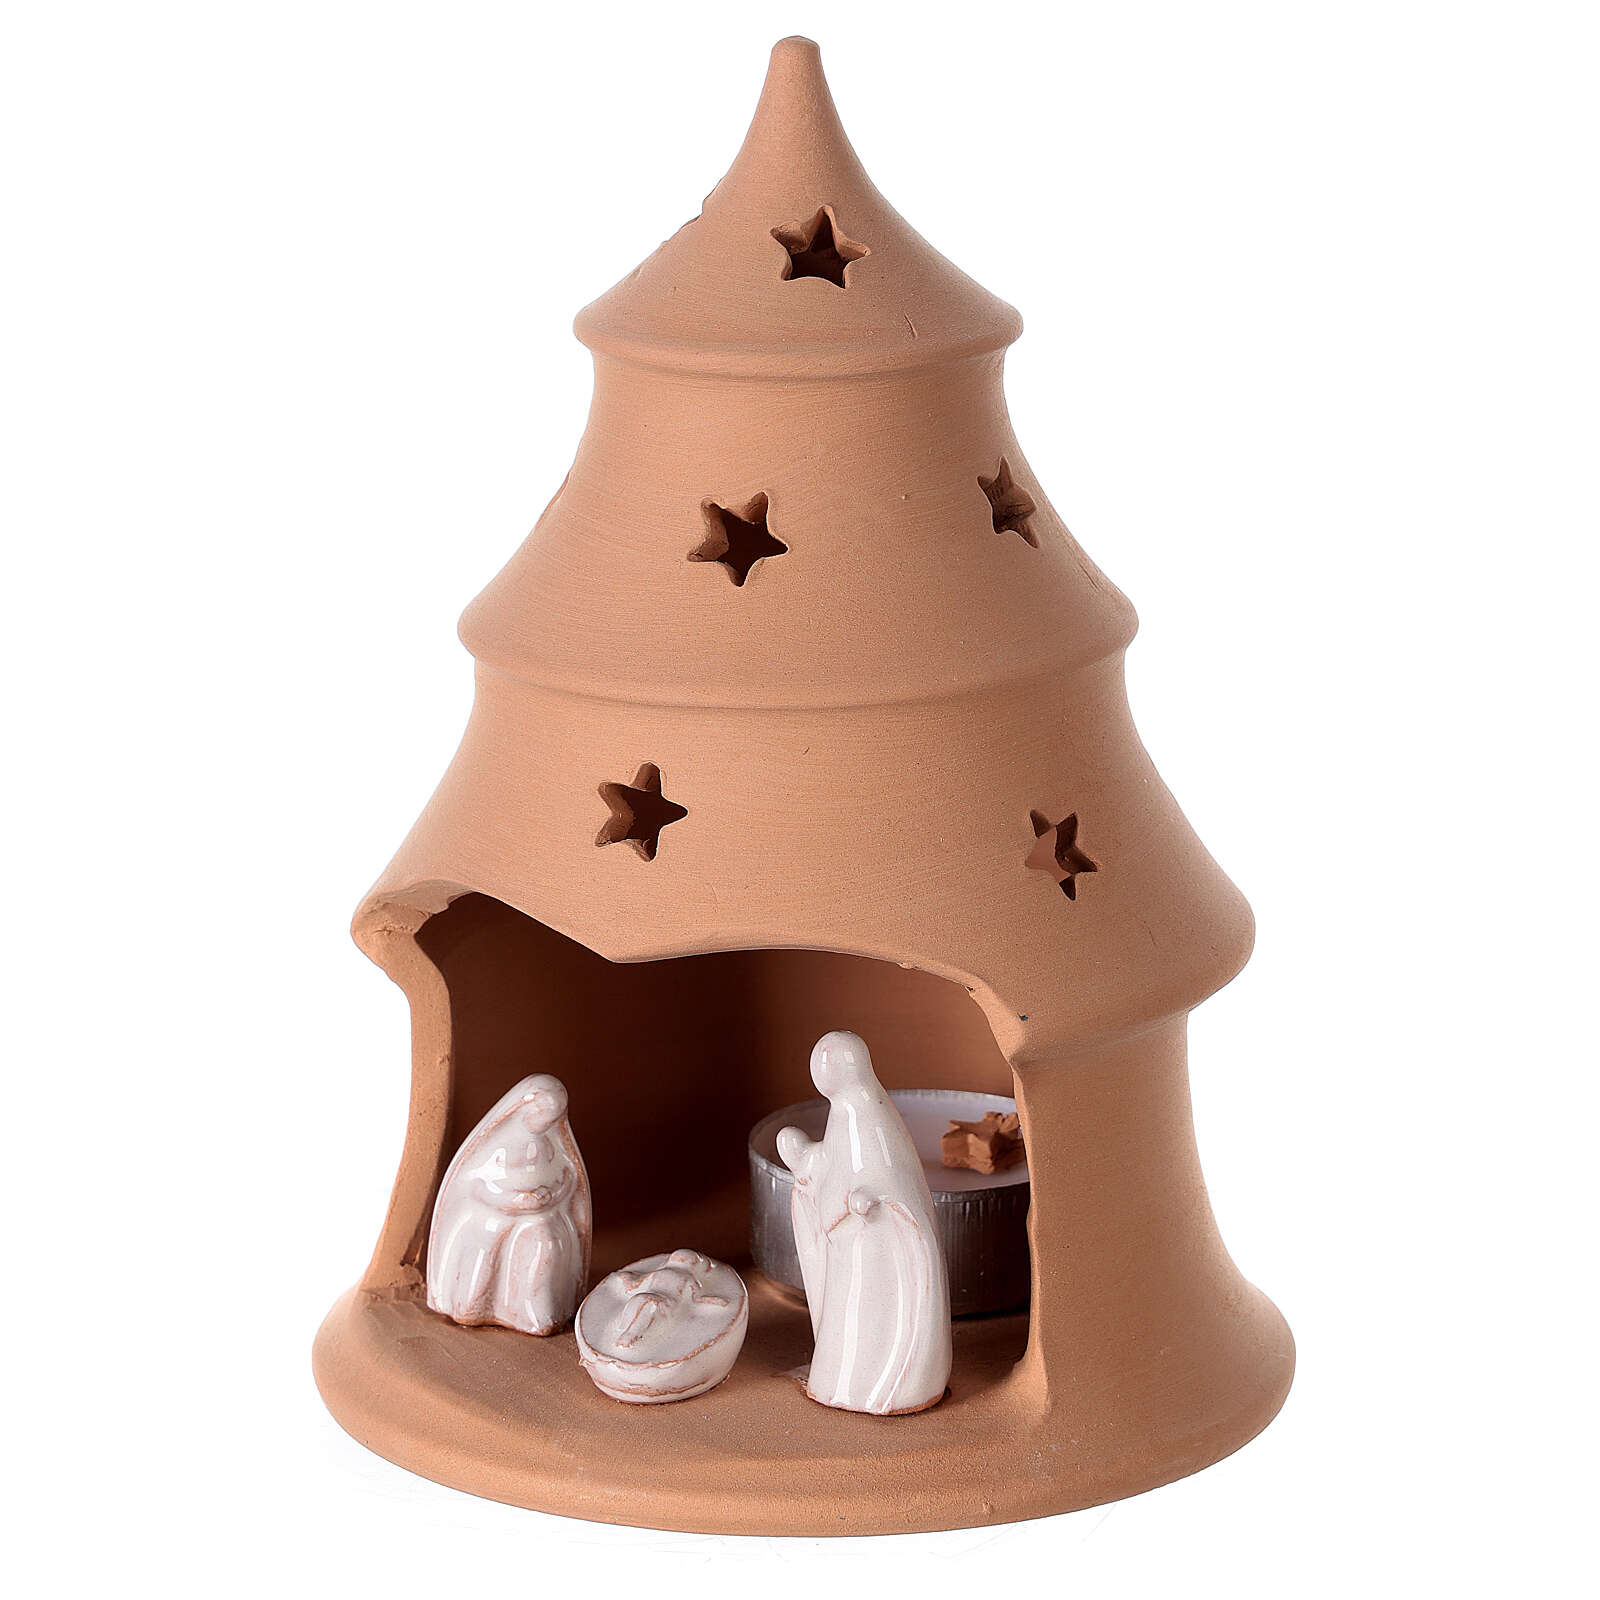 White Holy Family in Christmas tree candle holder Deruta terracotta 15 cm 4